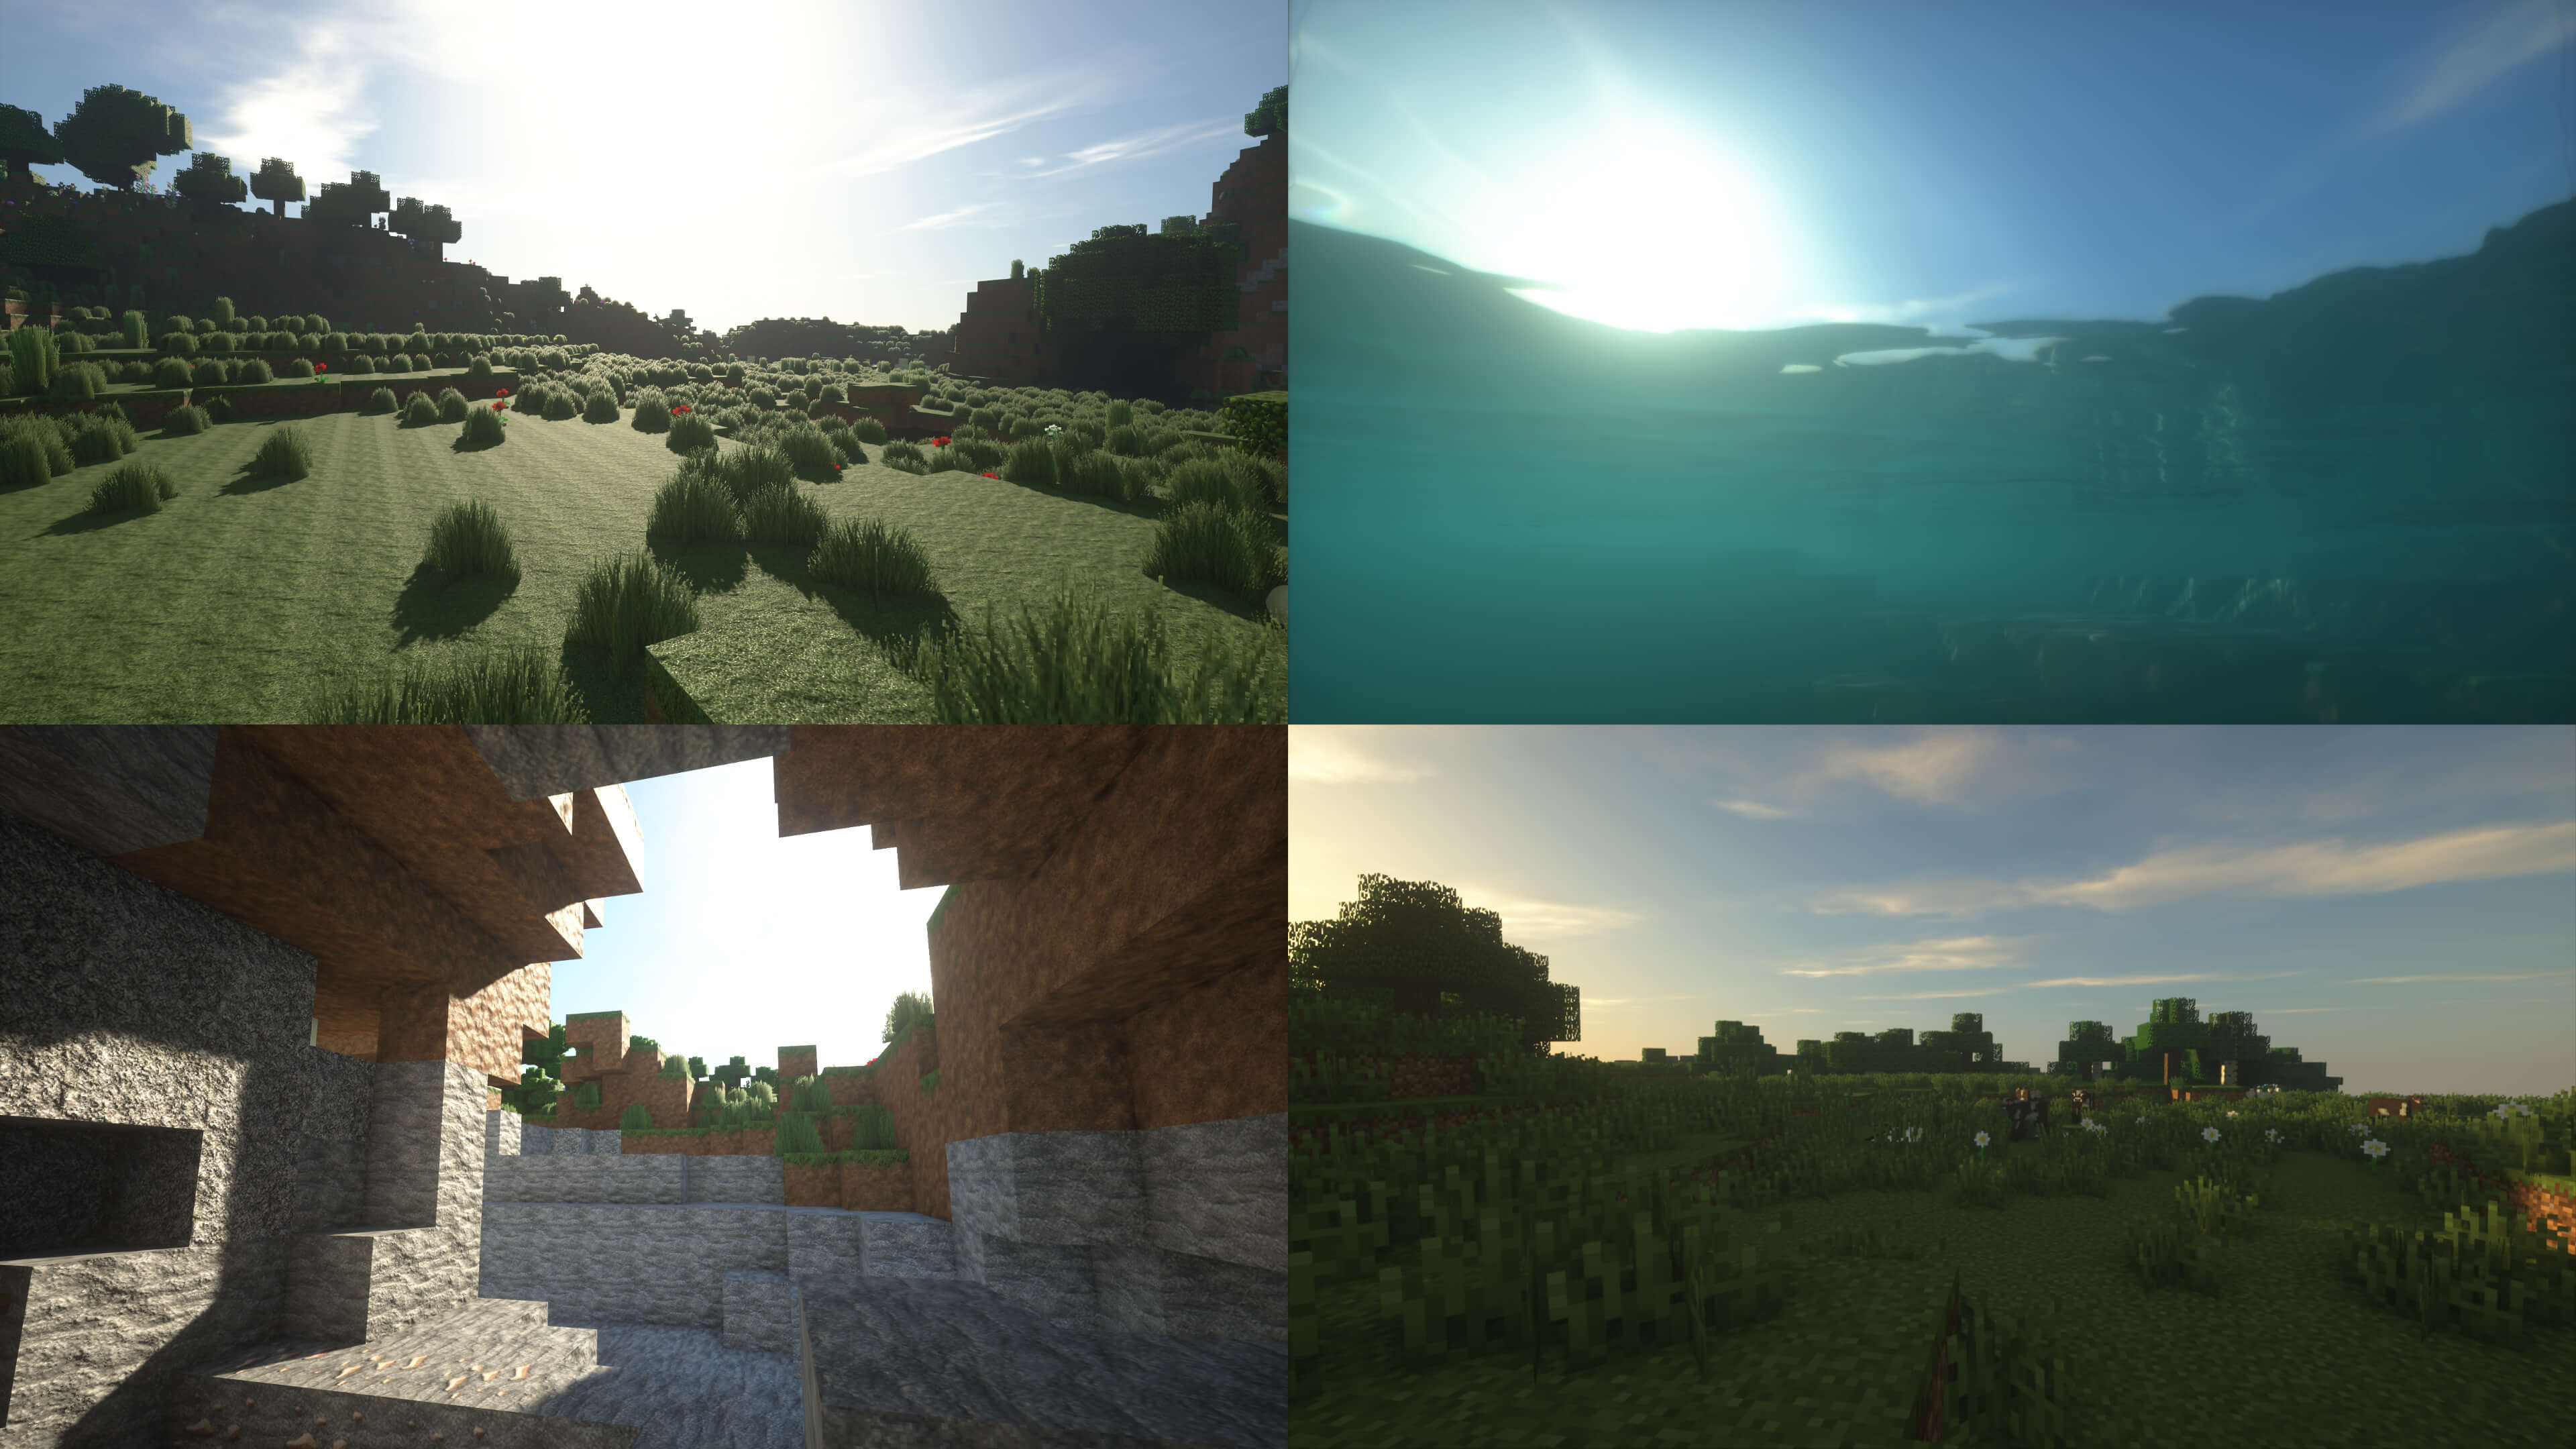 Minecraft shader pack adds ray tracing-style effects - TechSpot